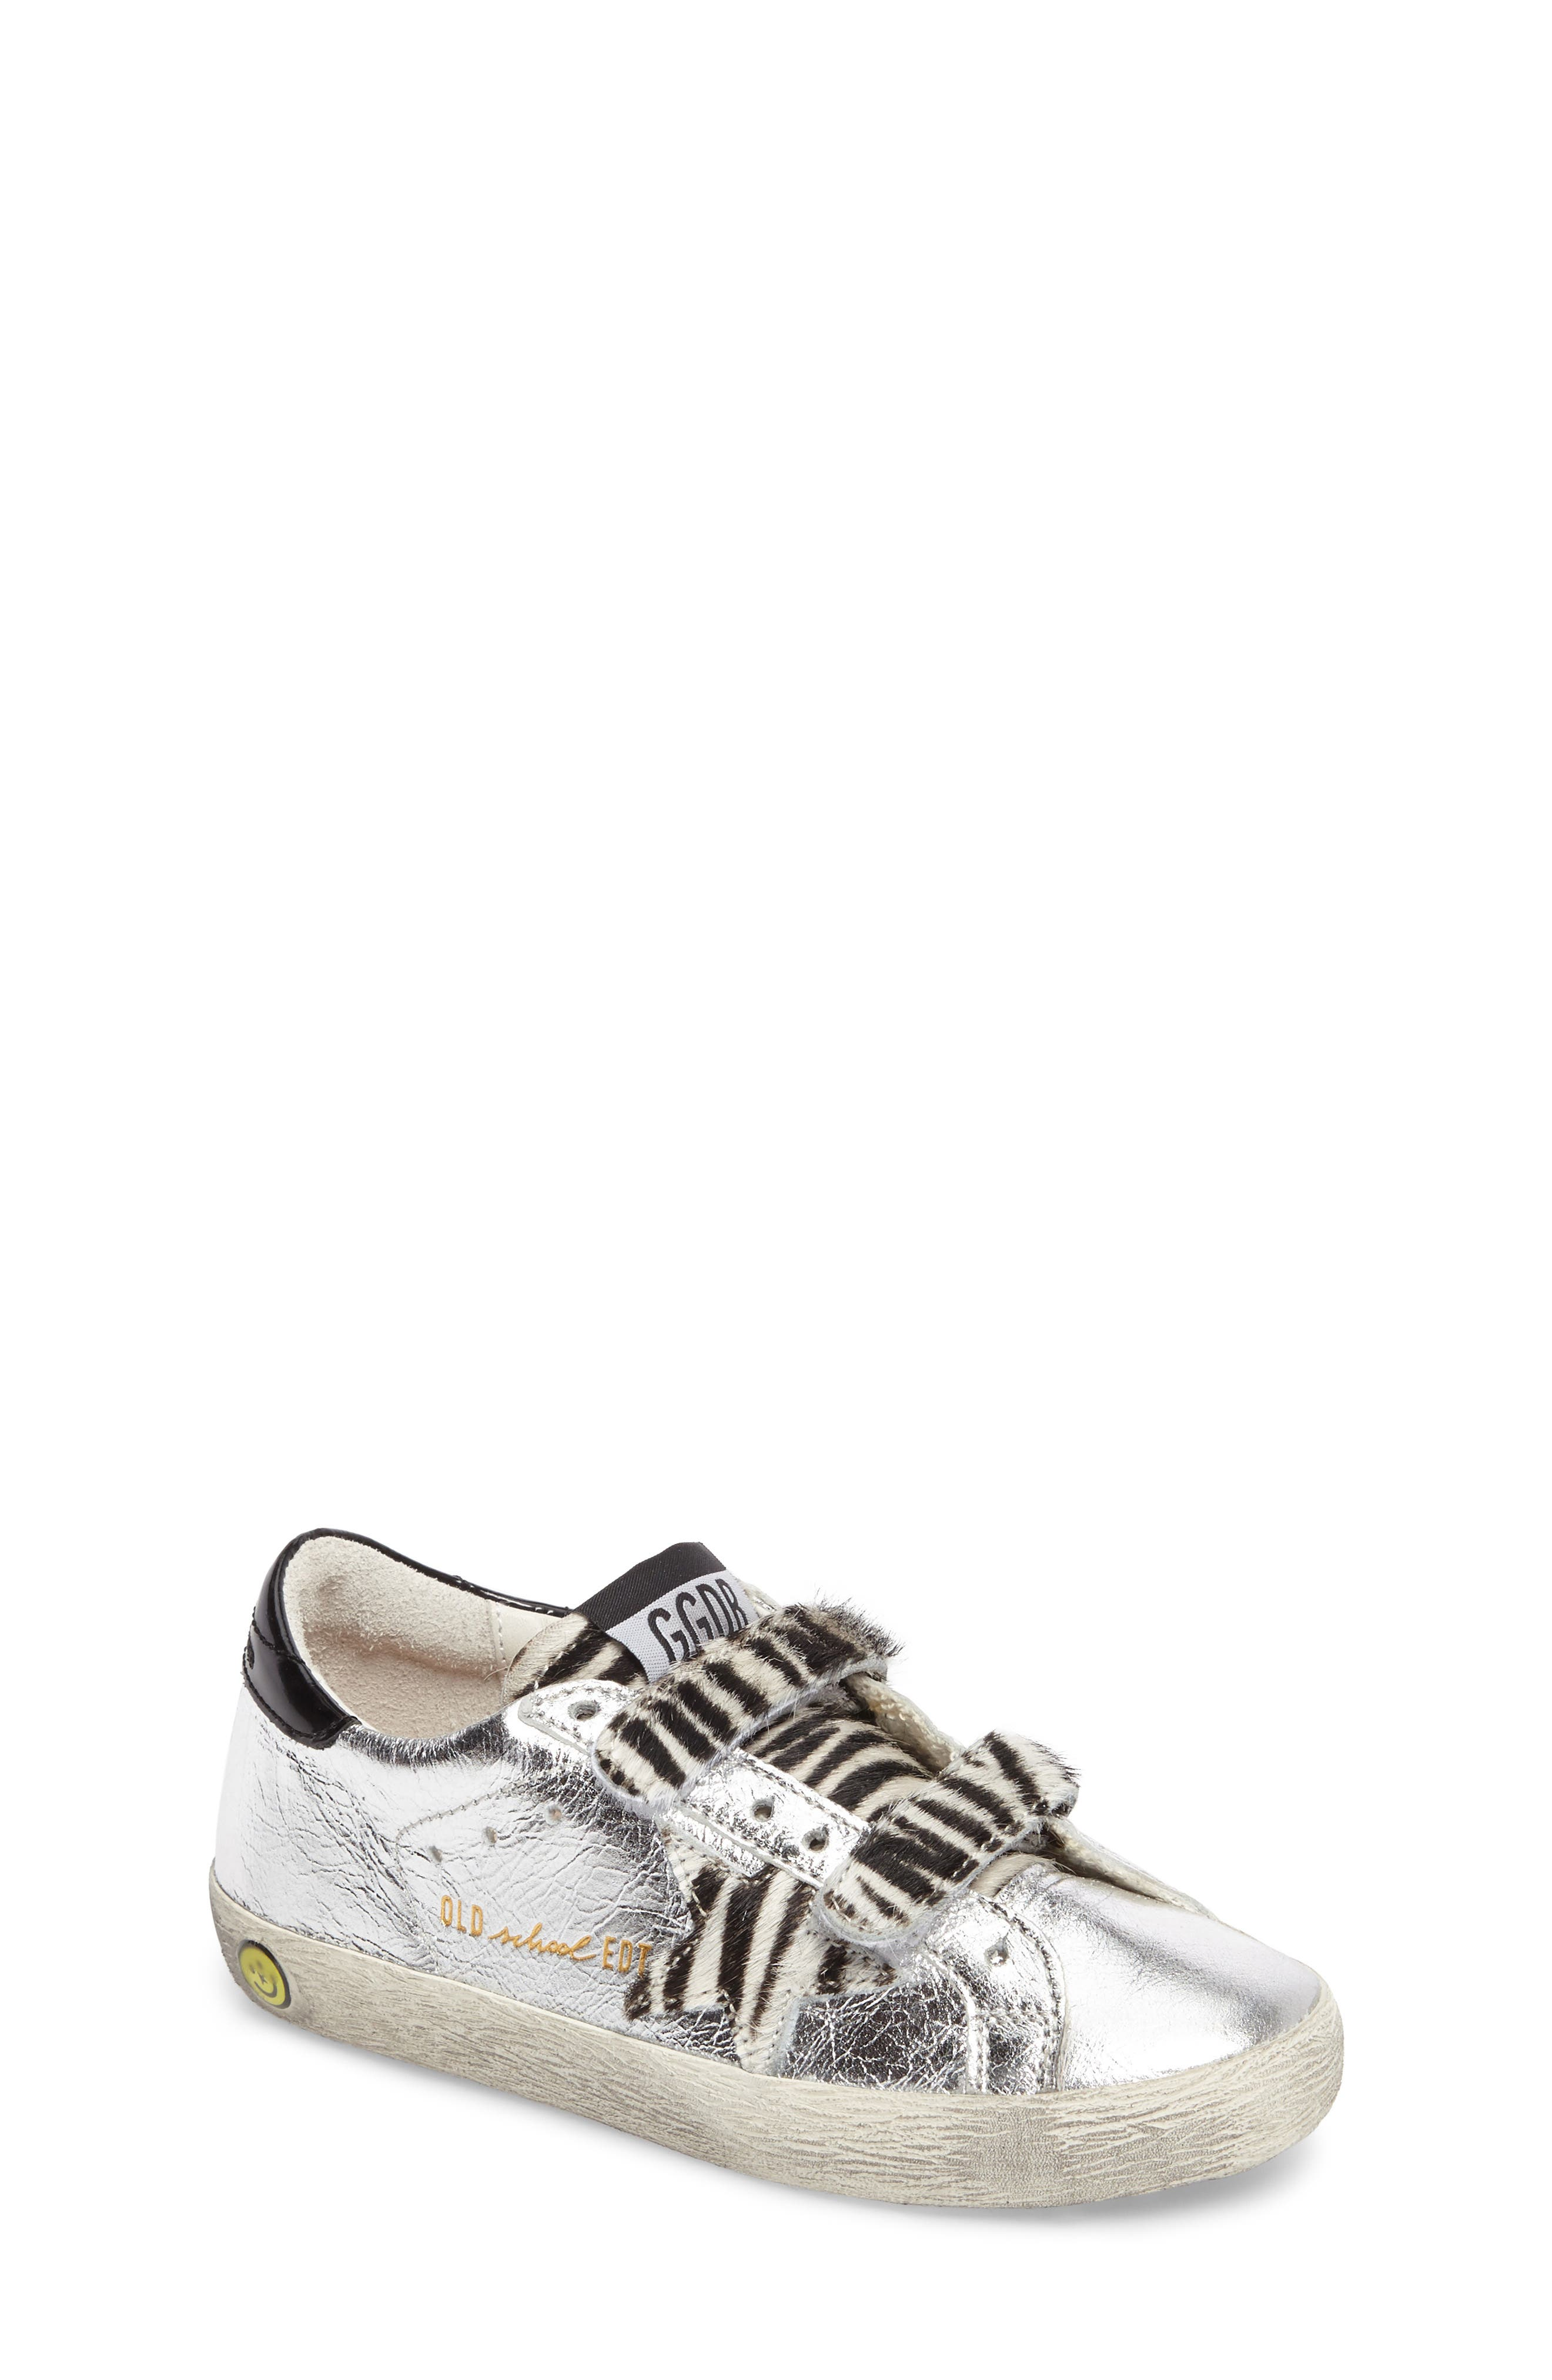 Superstar Old School Sneaker,                         Main,                         color, 040